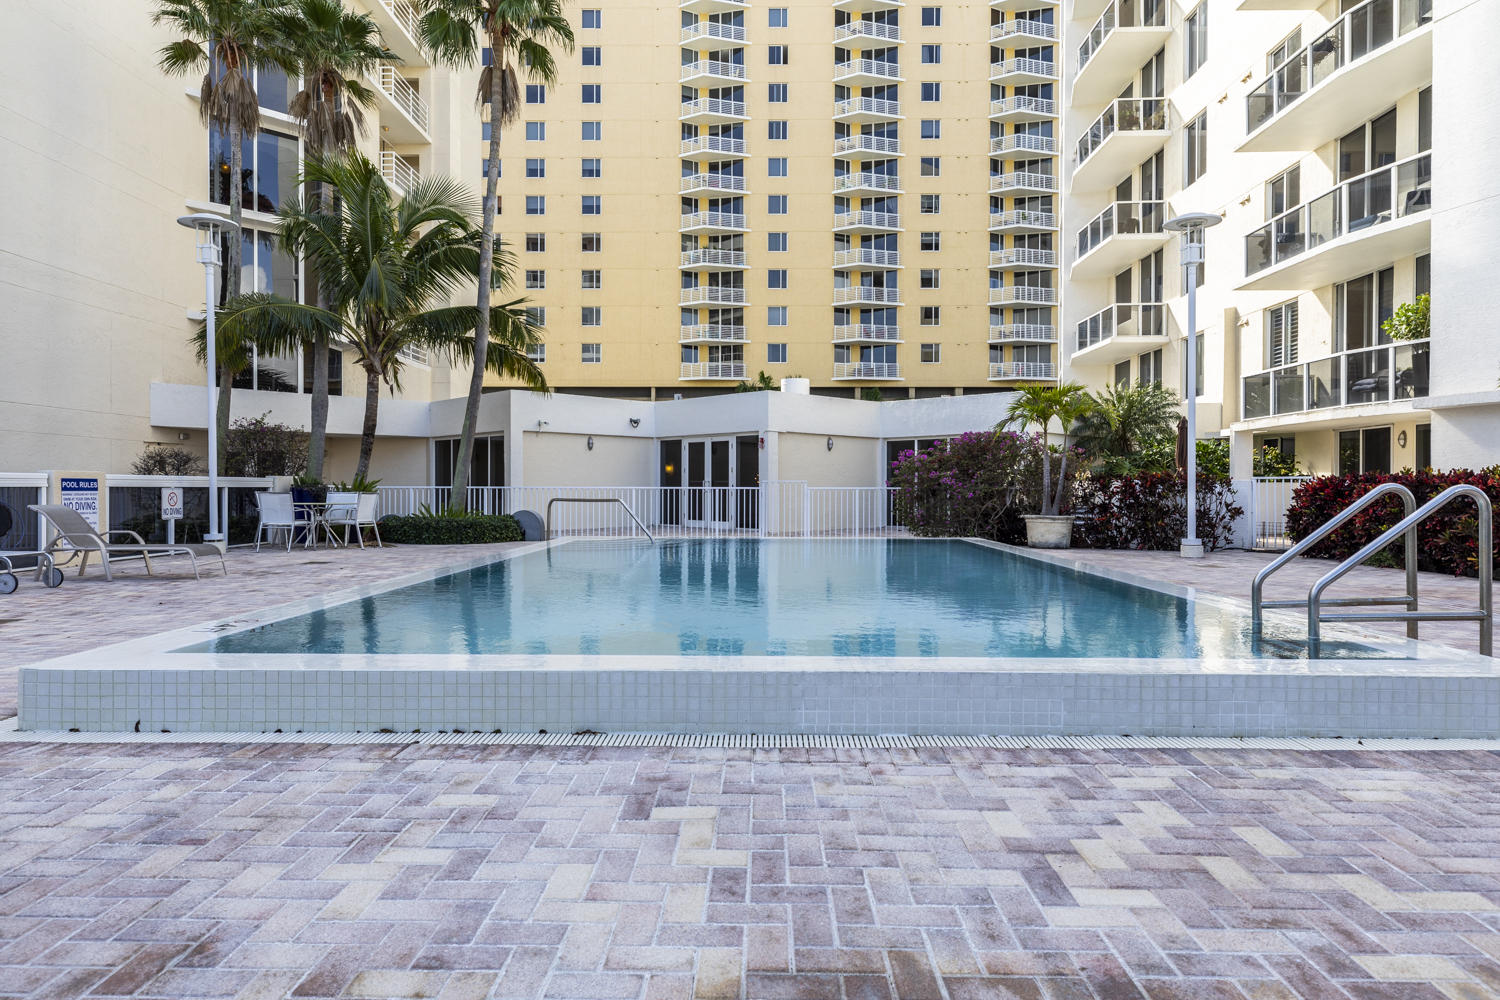 VILLA LOFTS WEST PALM BEACH REAL ESTATE